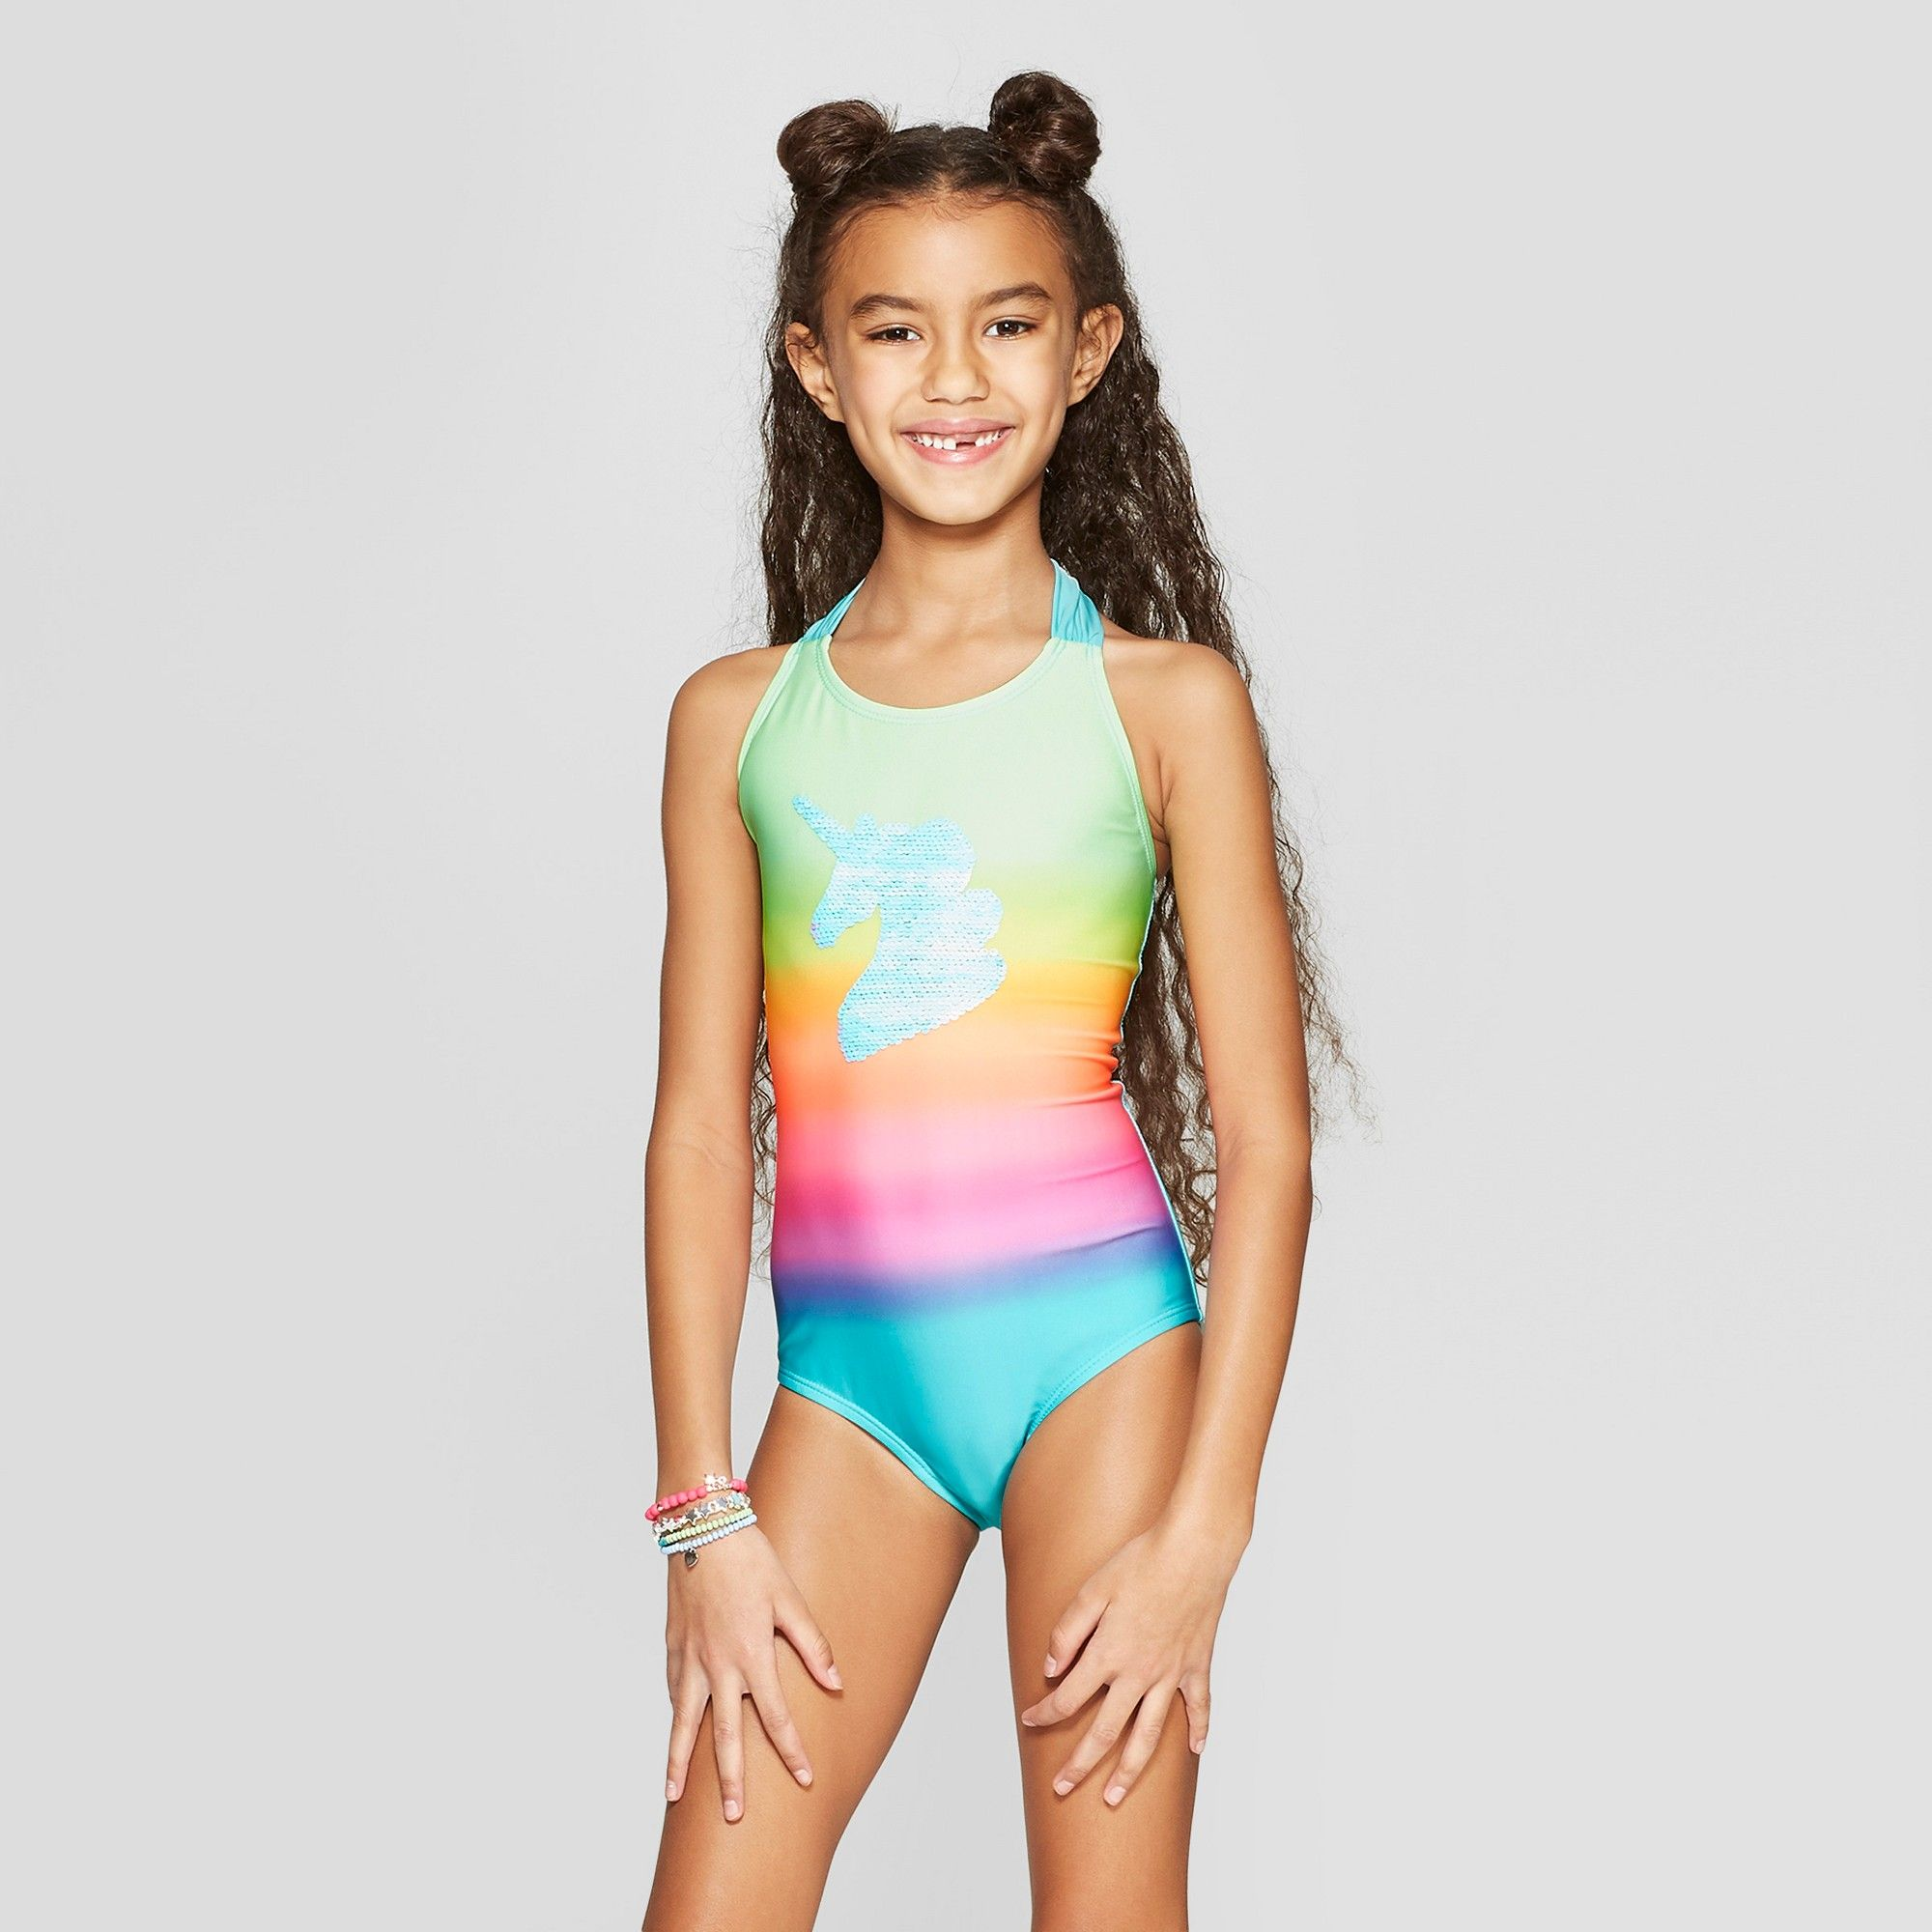 a9d6a25d83 Girls' Flip Sequins Time to Shine One Piece Swimsuit - Cat & Jack S,  Multicolored